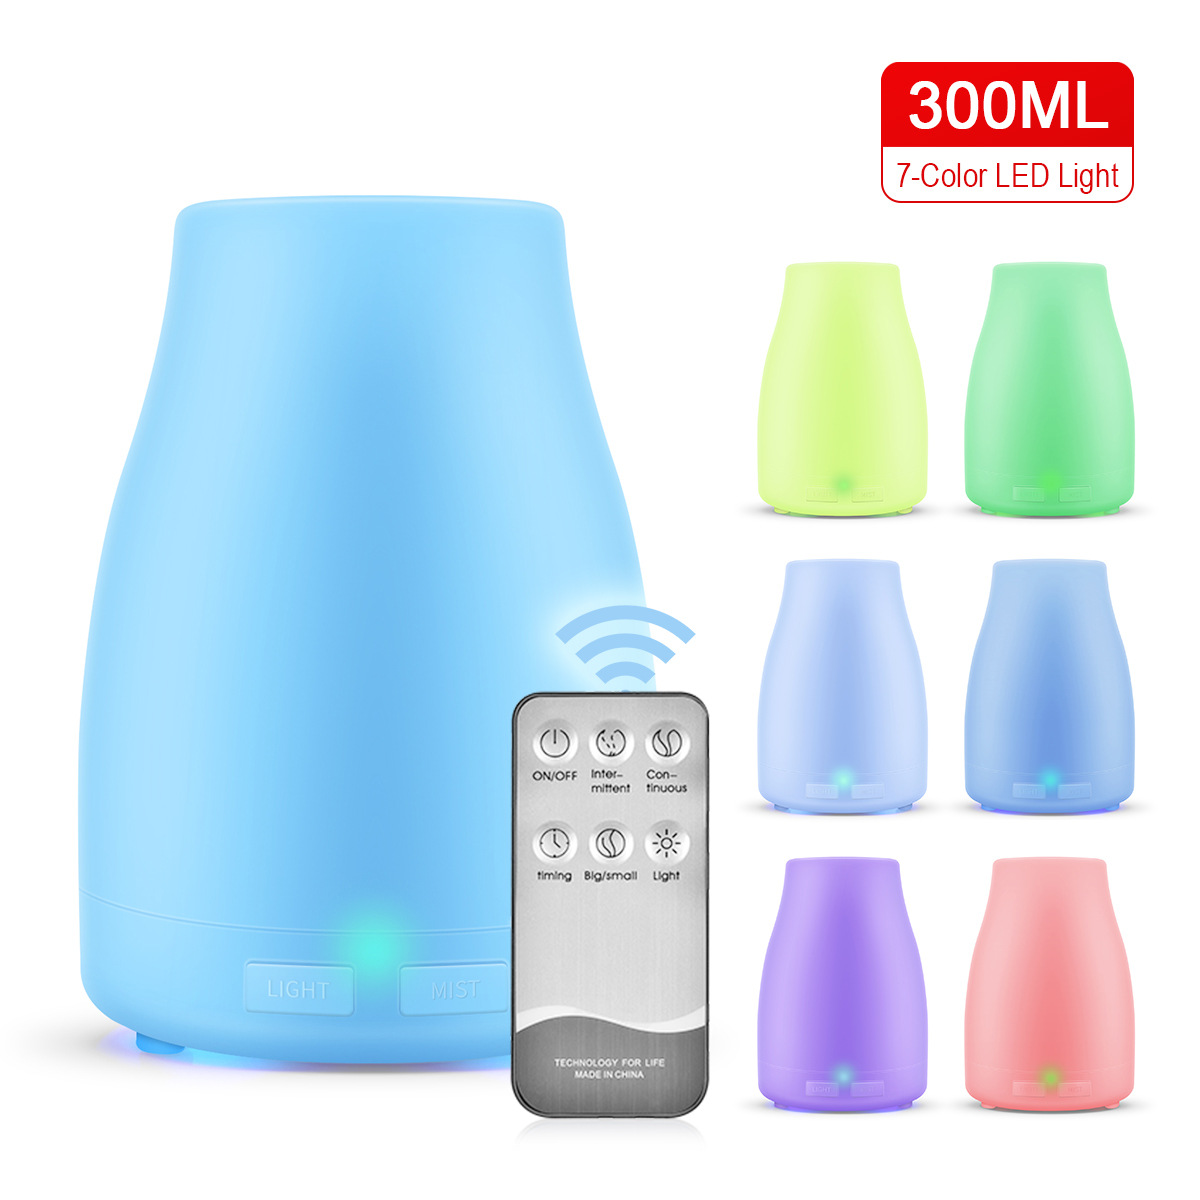 New Style 300ml Sake Bottle Remote Control Humidifier Household Environmentally Friendly Air Spray Mini Ultrasonic Aromatherapy|Humidifiers| |  - title=